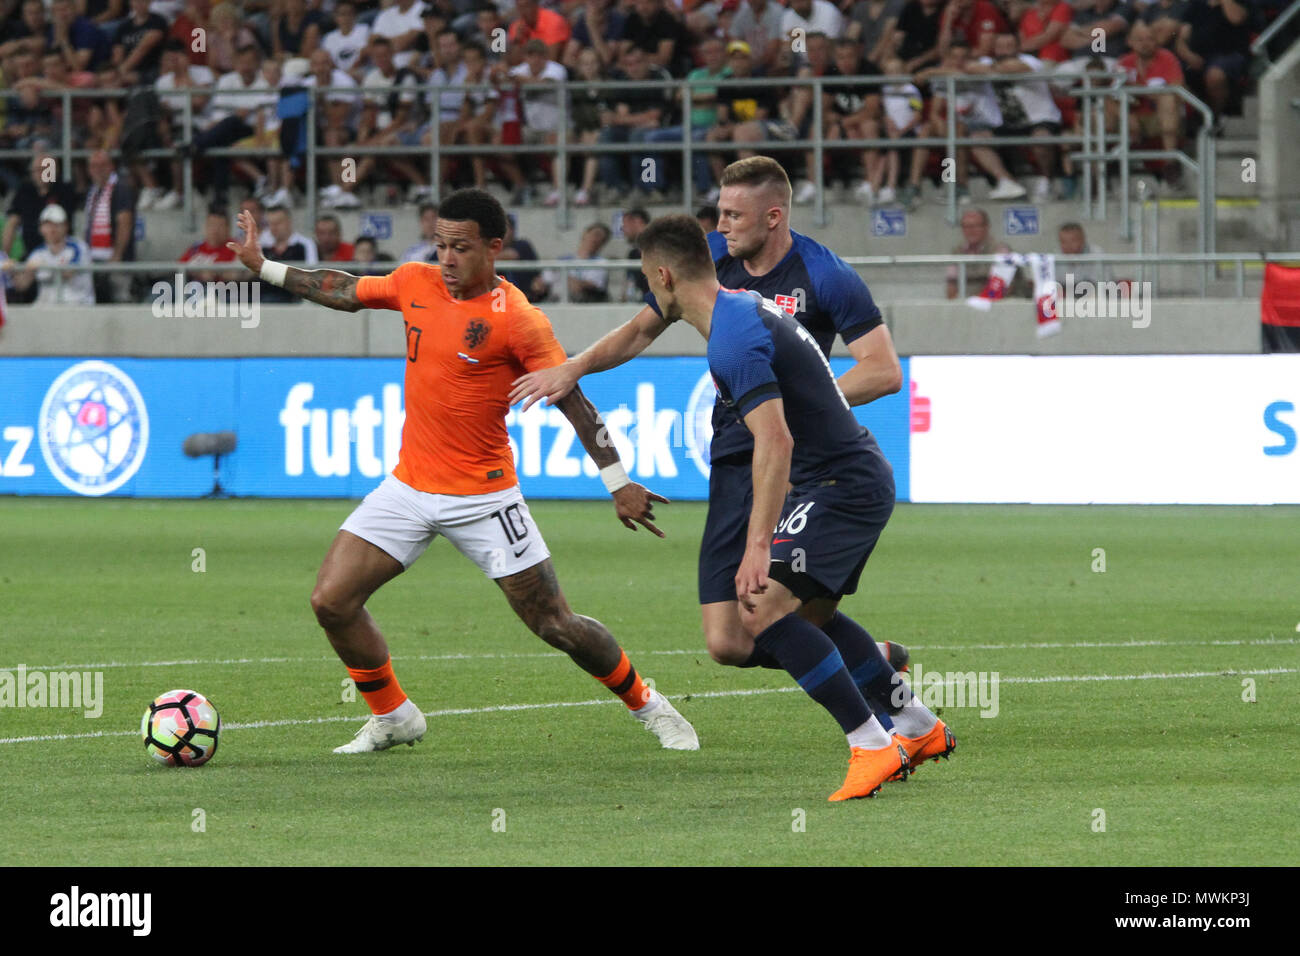 Trnava, Slovakia. 31st May, 2018. Memphis Depay (10) during the friendly football match between Slovakia and Netherlands (1 – 1). - Stock Image